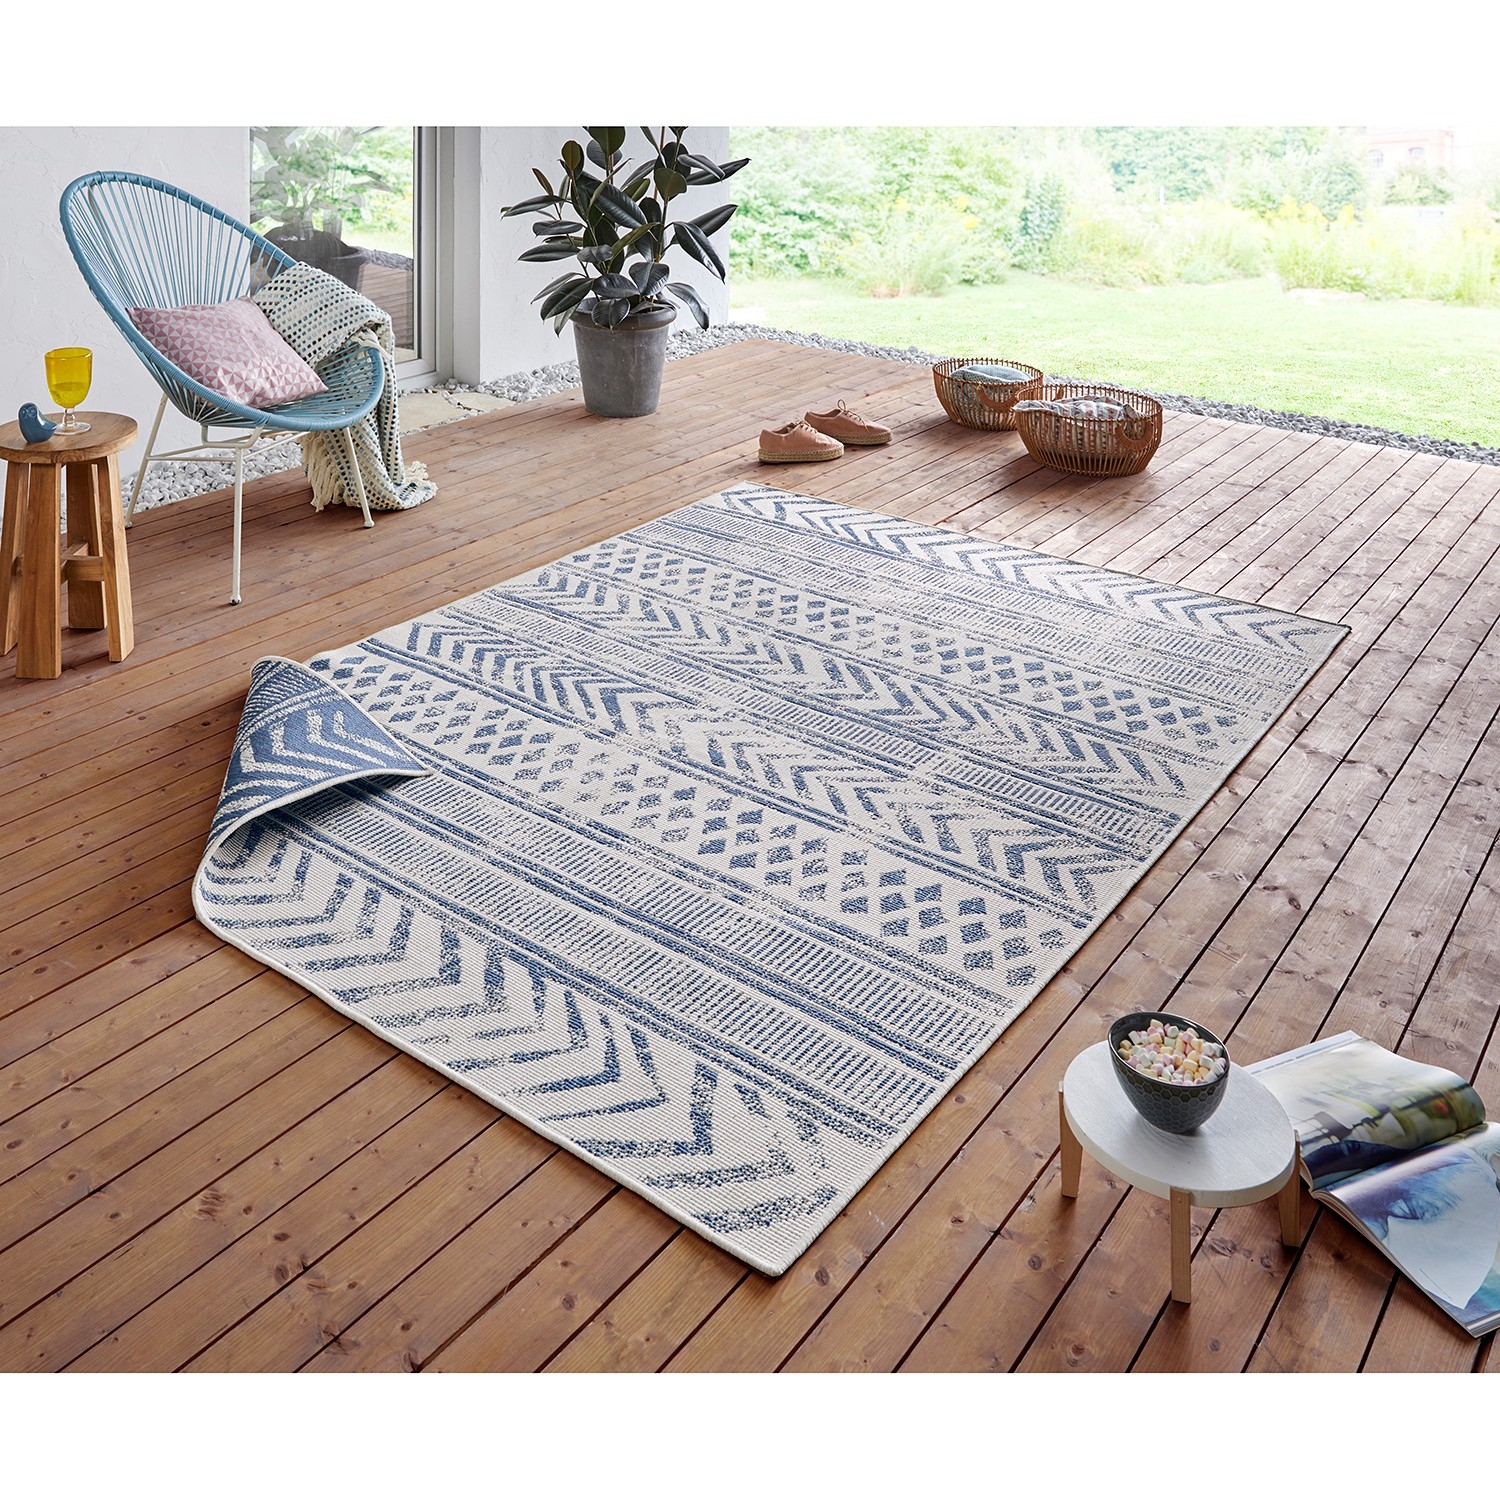 Home24 Outdoorvloerkleed Biri, home24